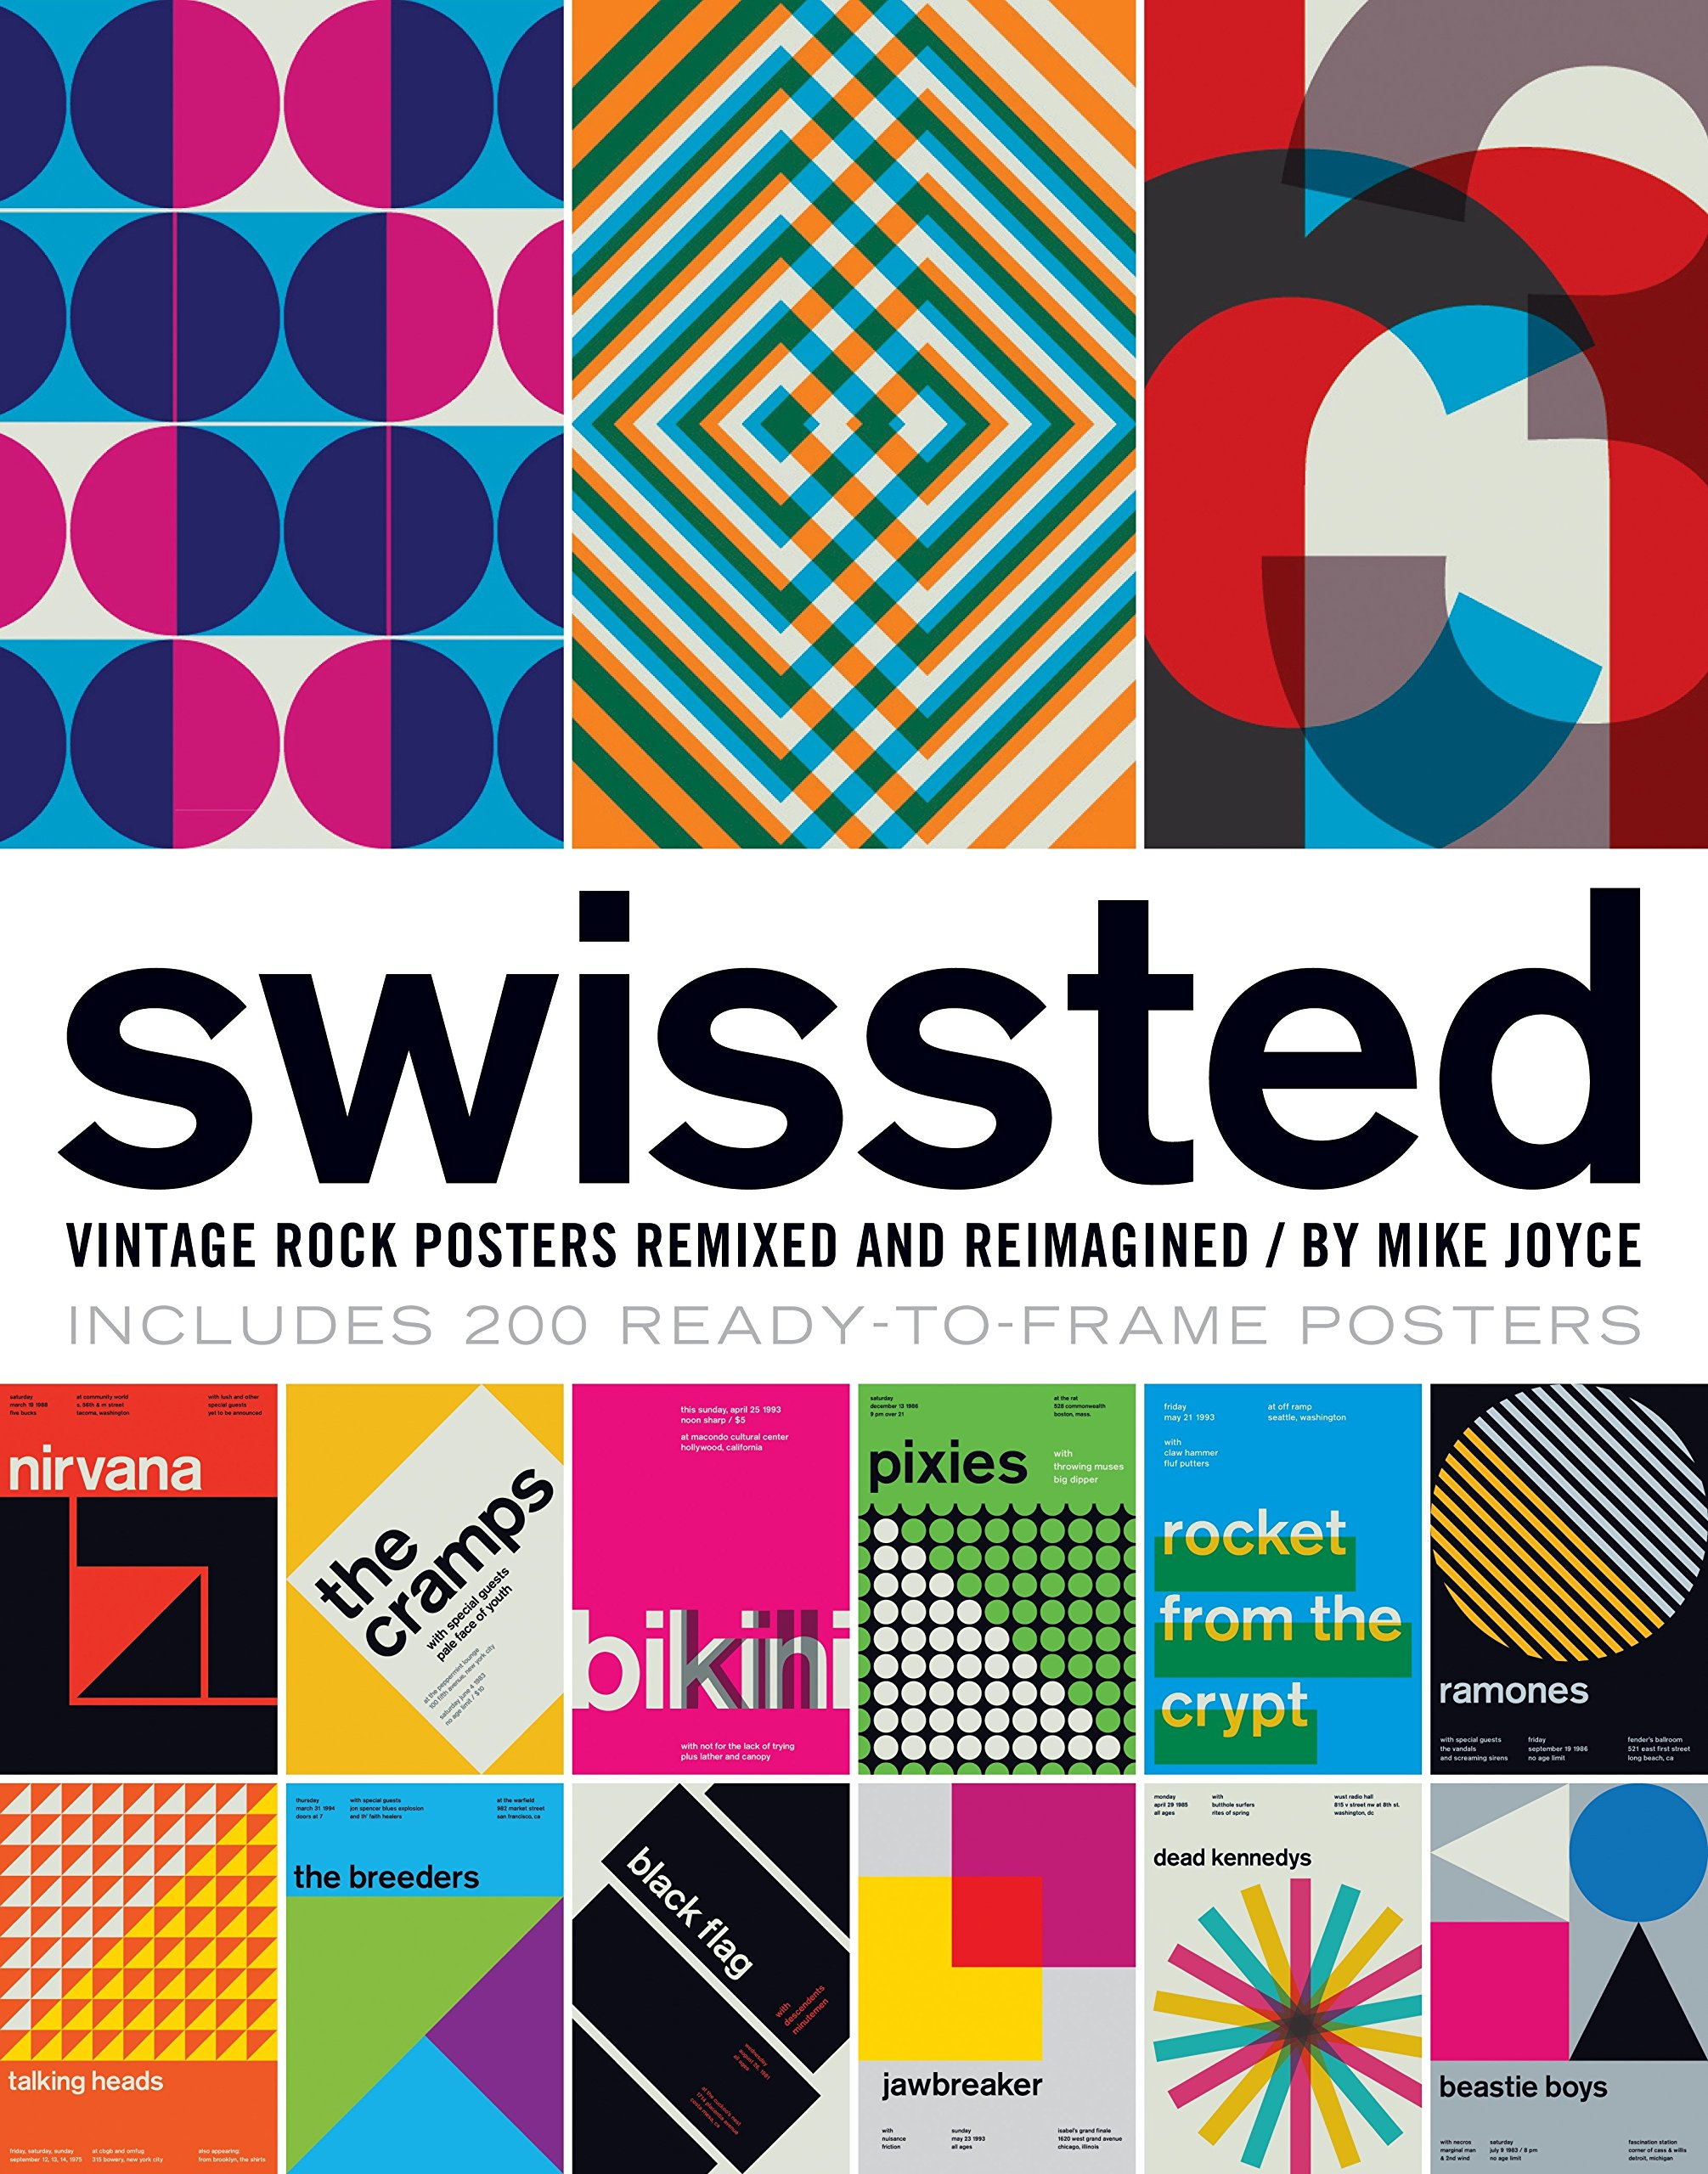 Swissted: Vintage Rock Posters Remixed and Reimagined: Mike